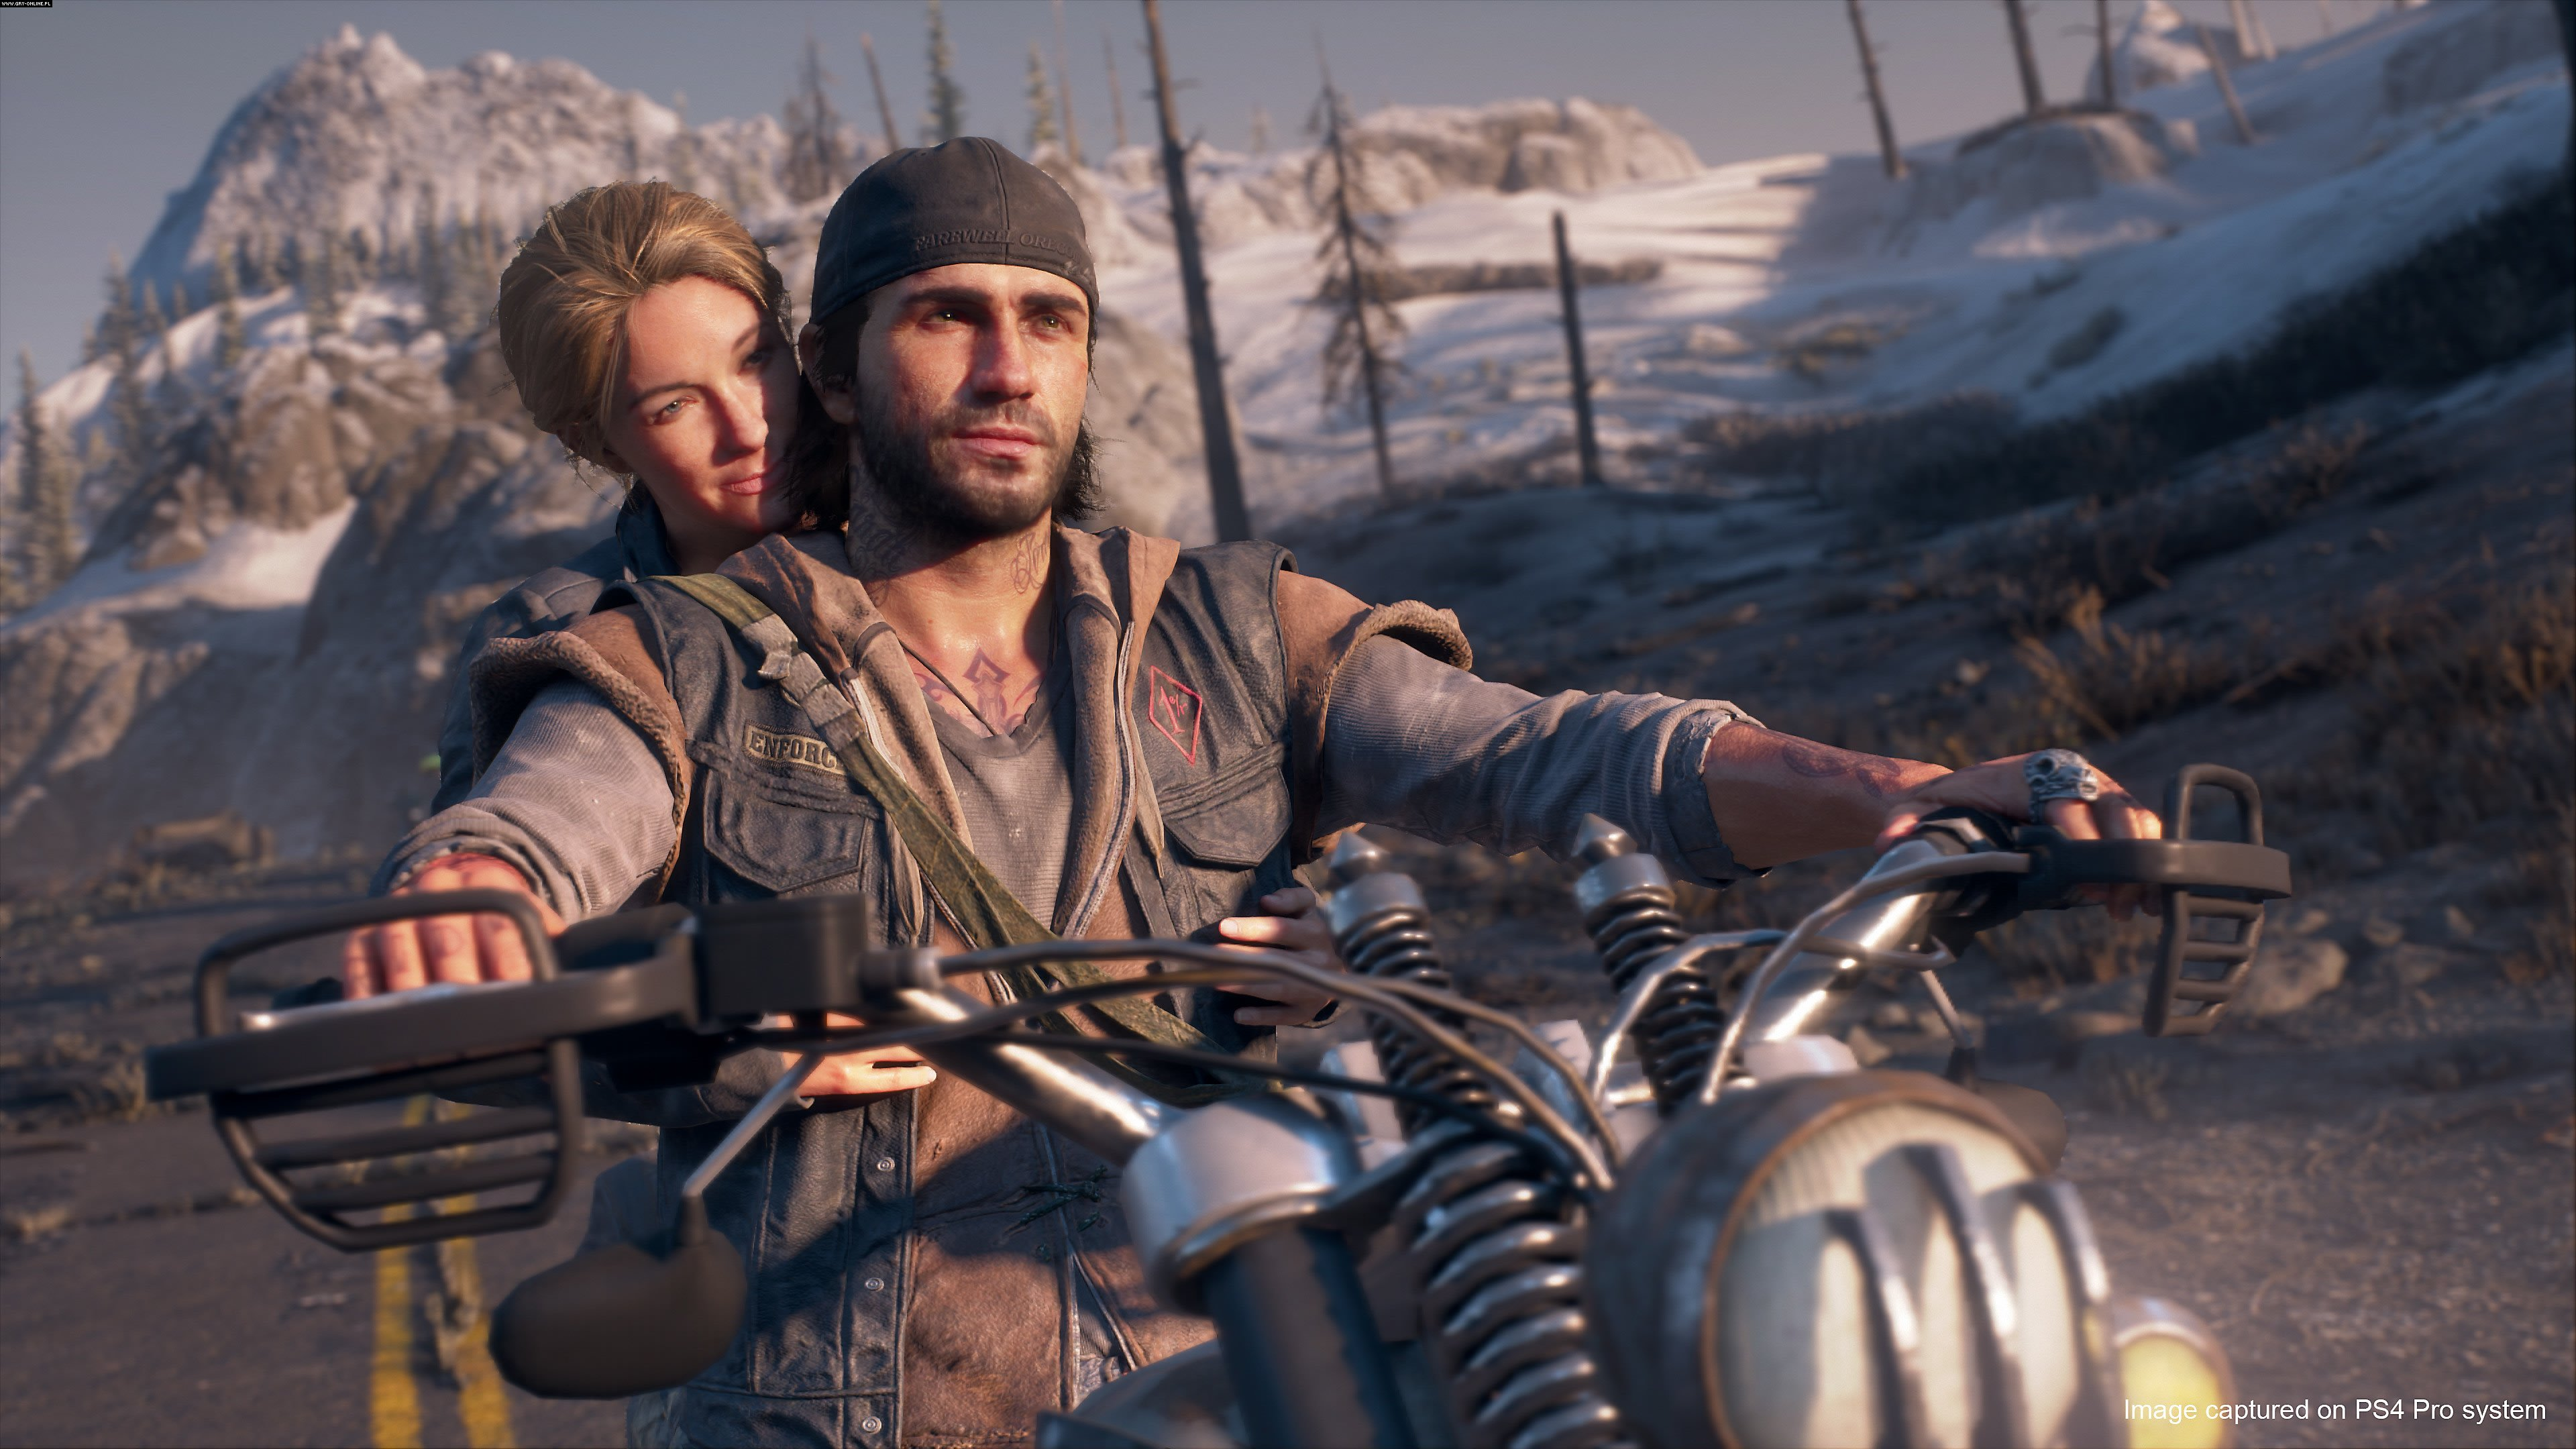 Days Gone PS4 Games Image 23/64, Bend Studio, Sony Interactive Entertainment